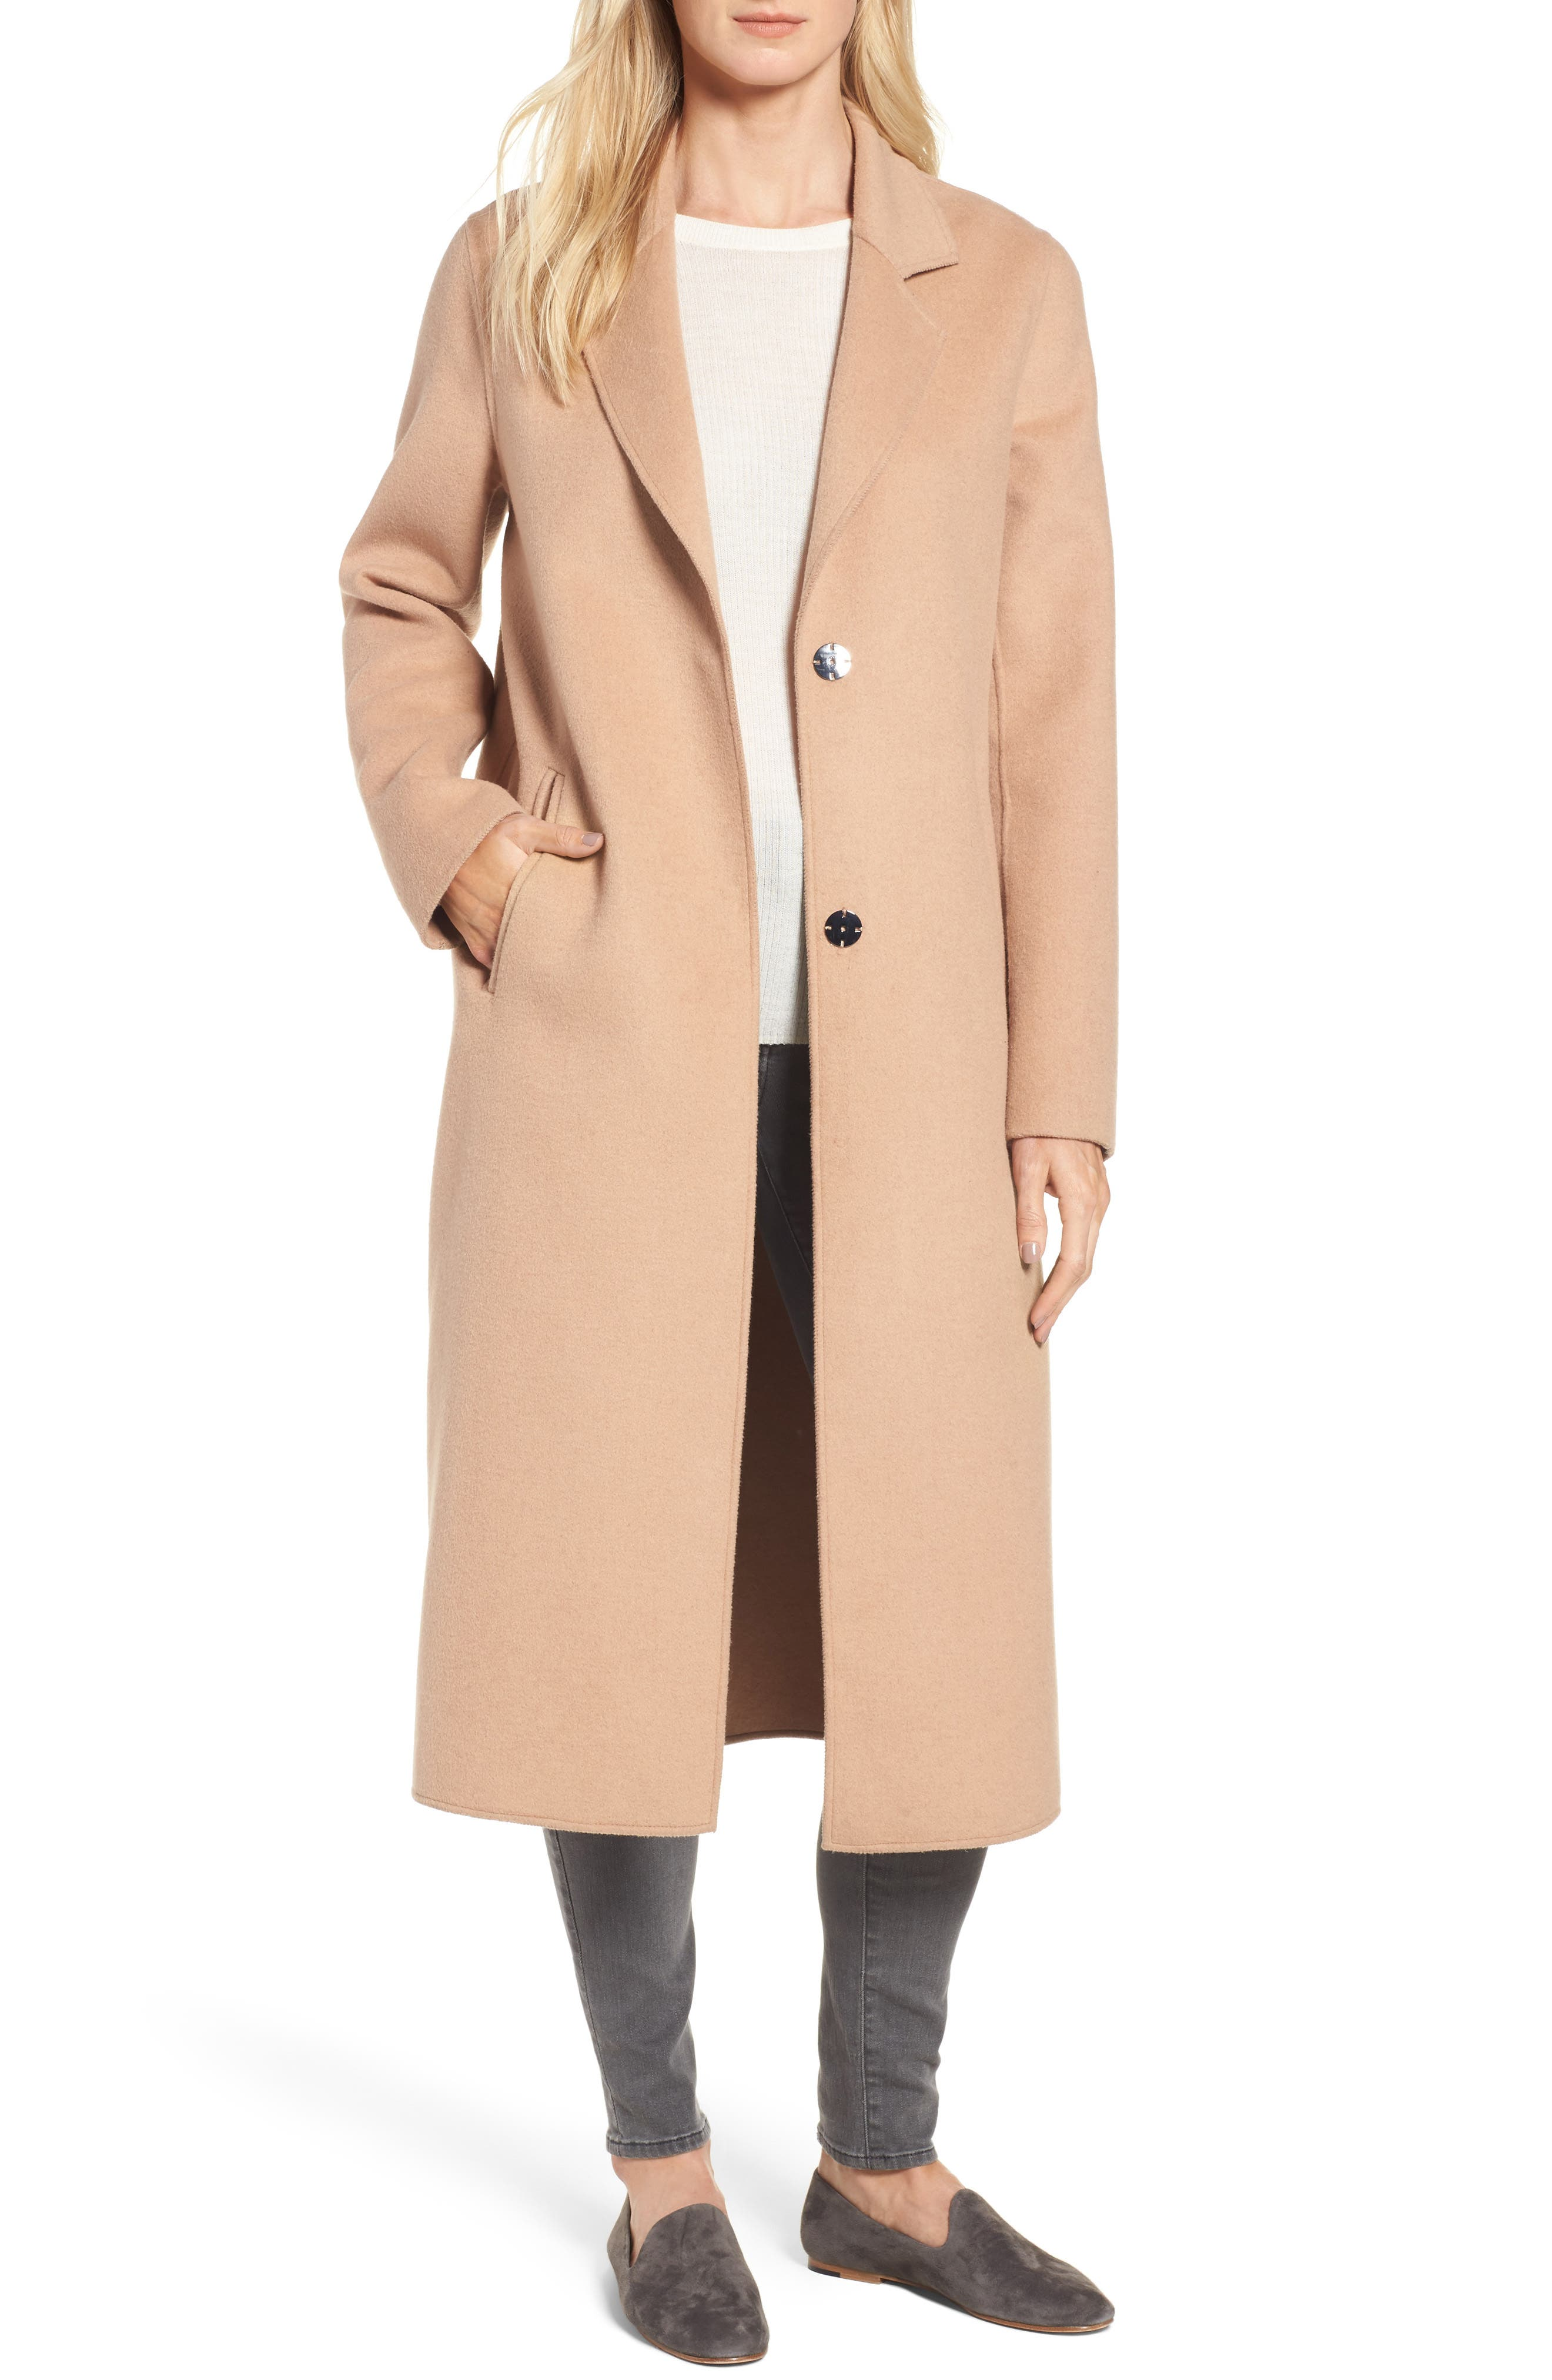 Alternate Image 1 Selected - Kenneth Cole New York Double Face Wool Blend Long Coat